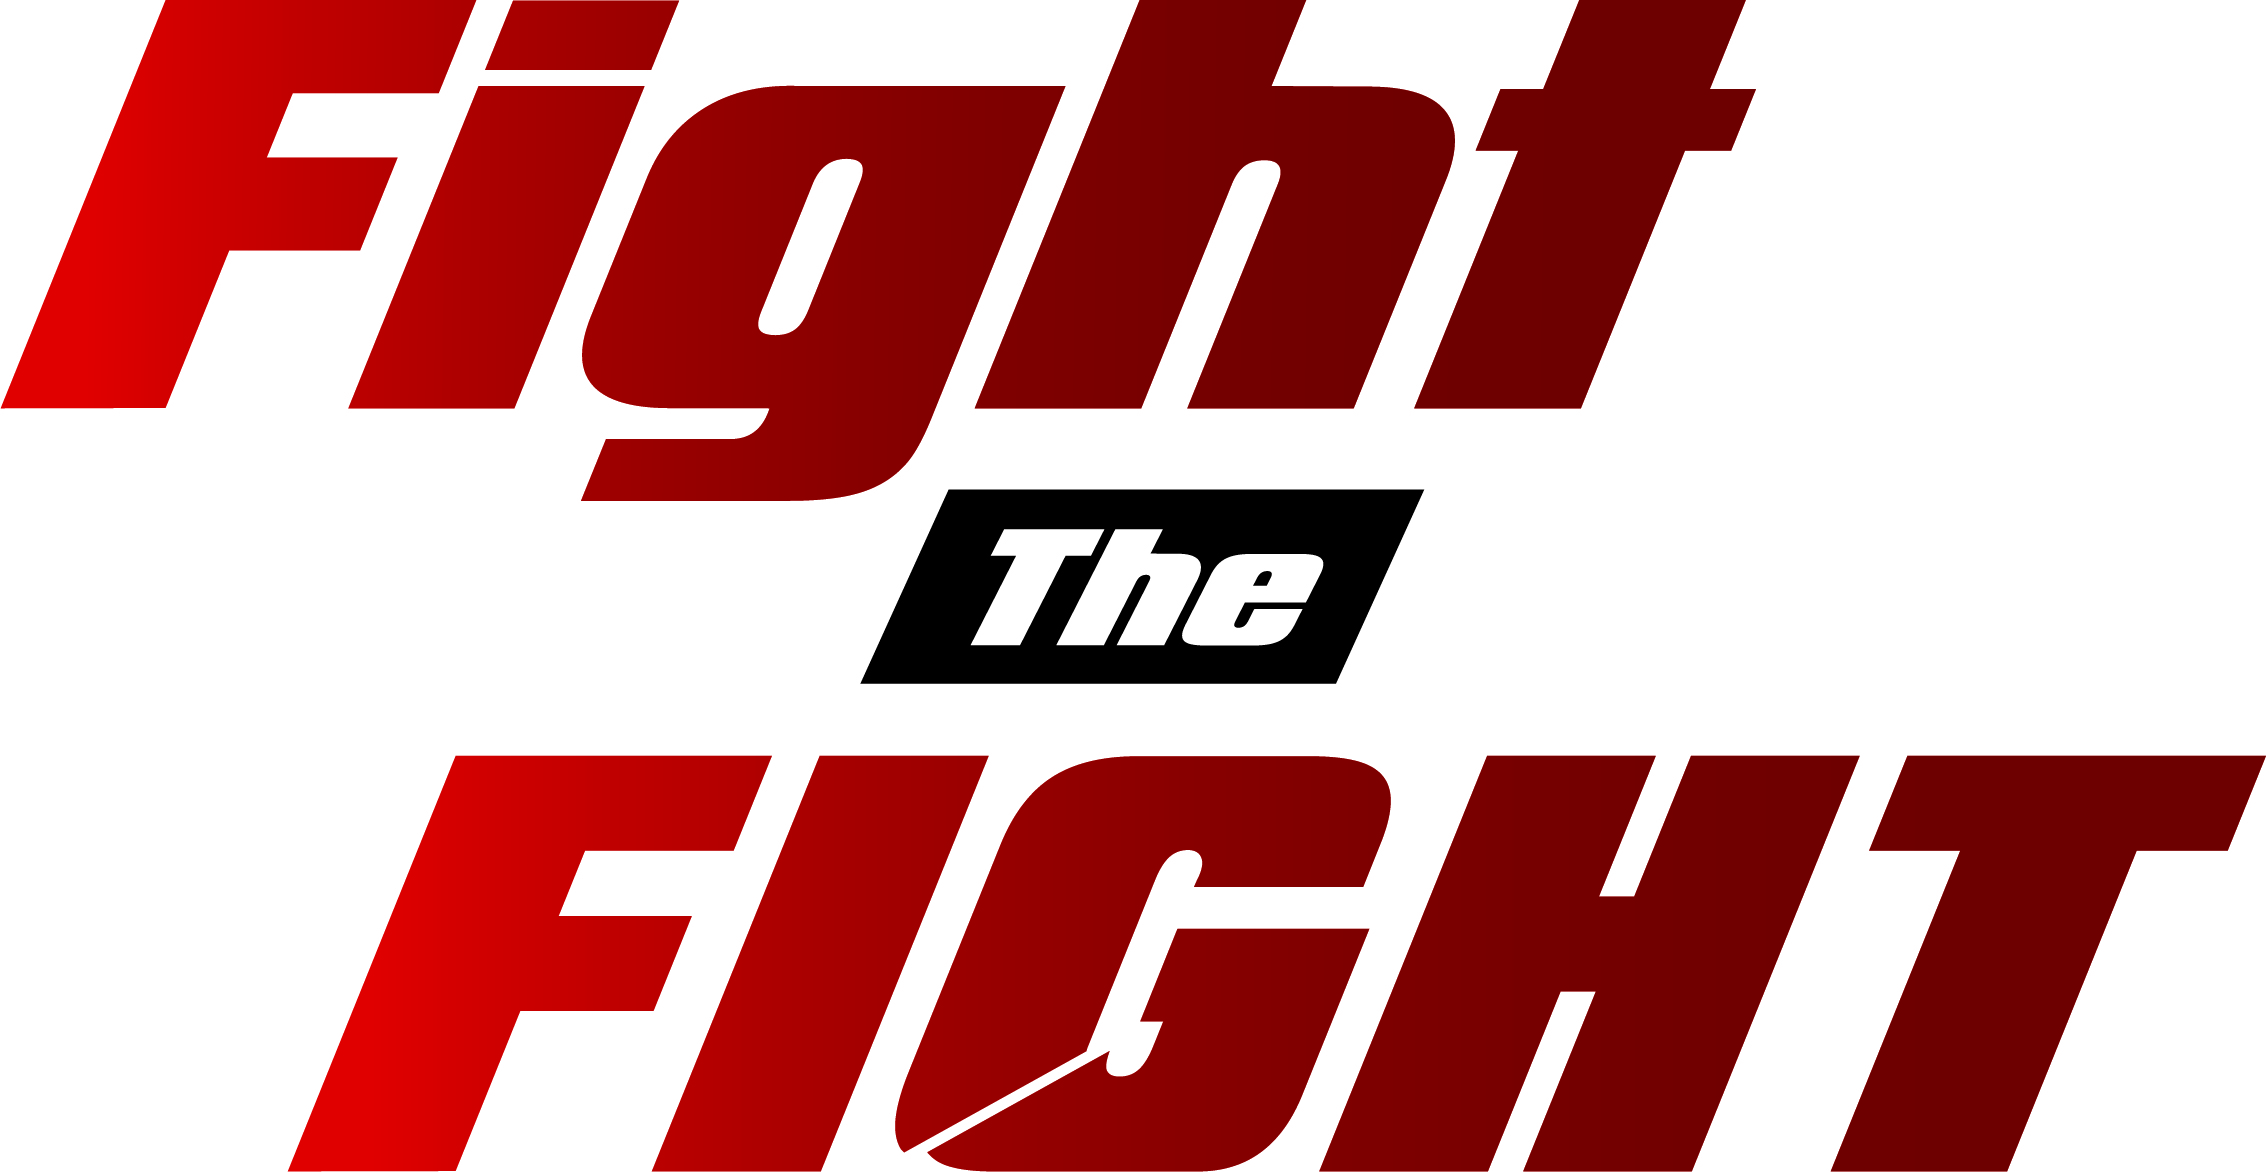 FightTheFIGHT